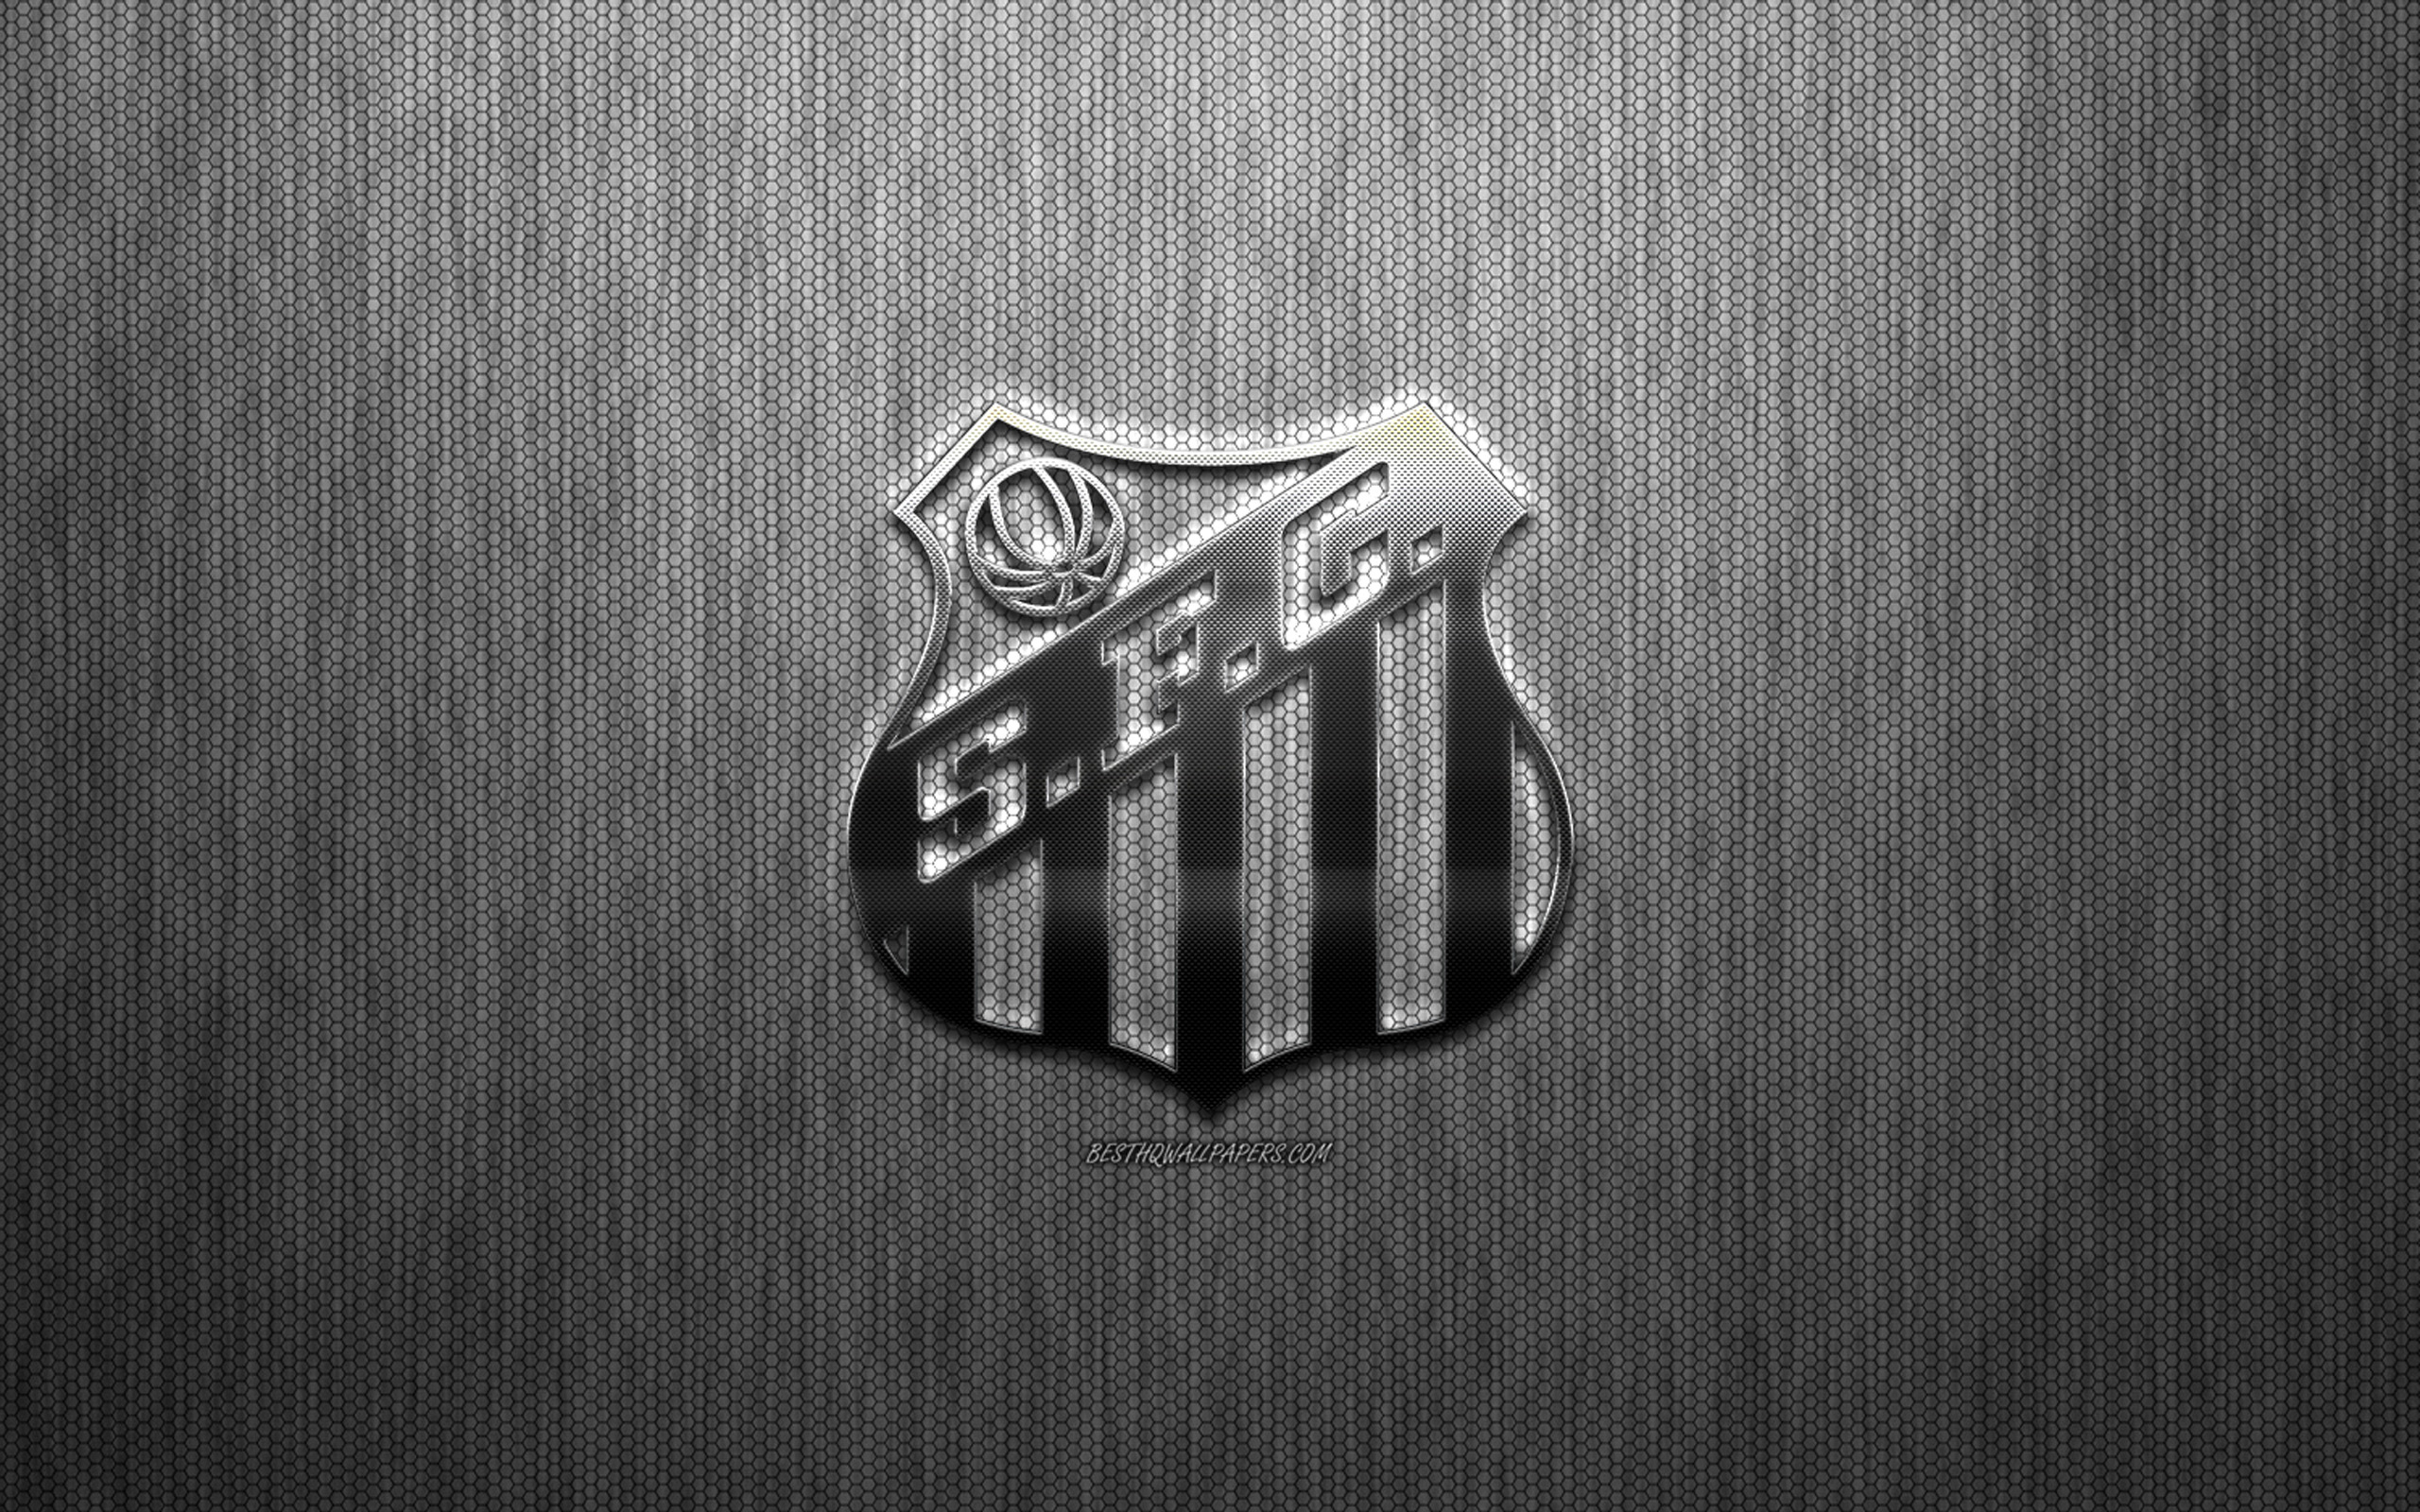 Download wallpapers Santos FC Brazilian football club steel logo 2560x1600